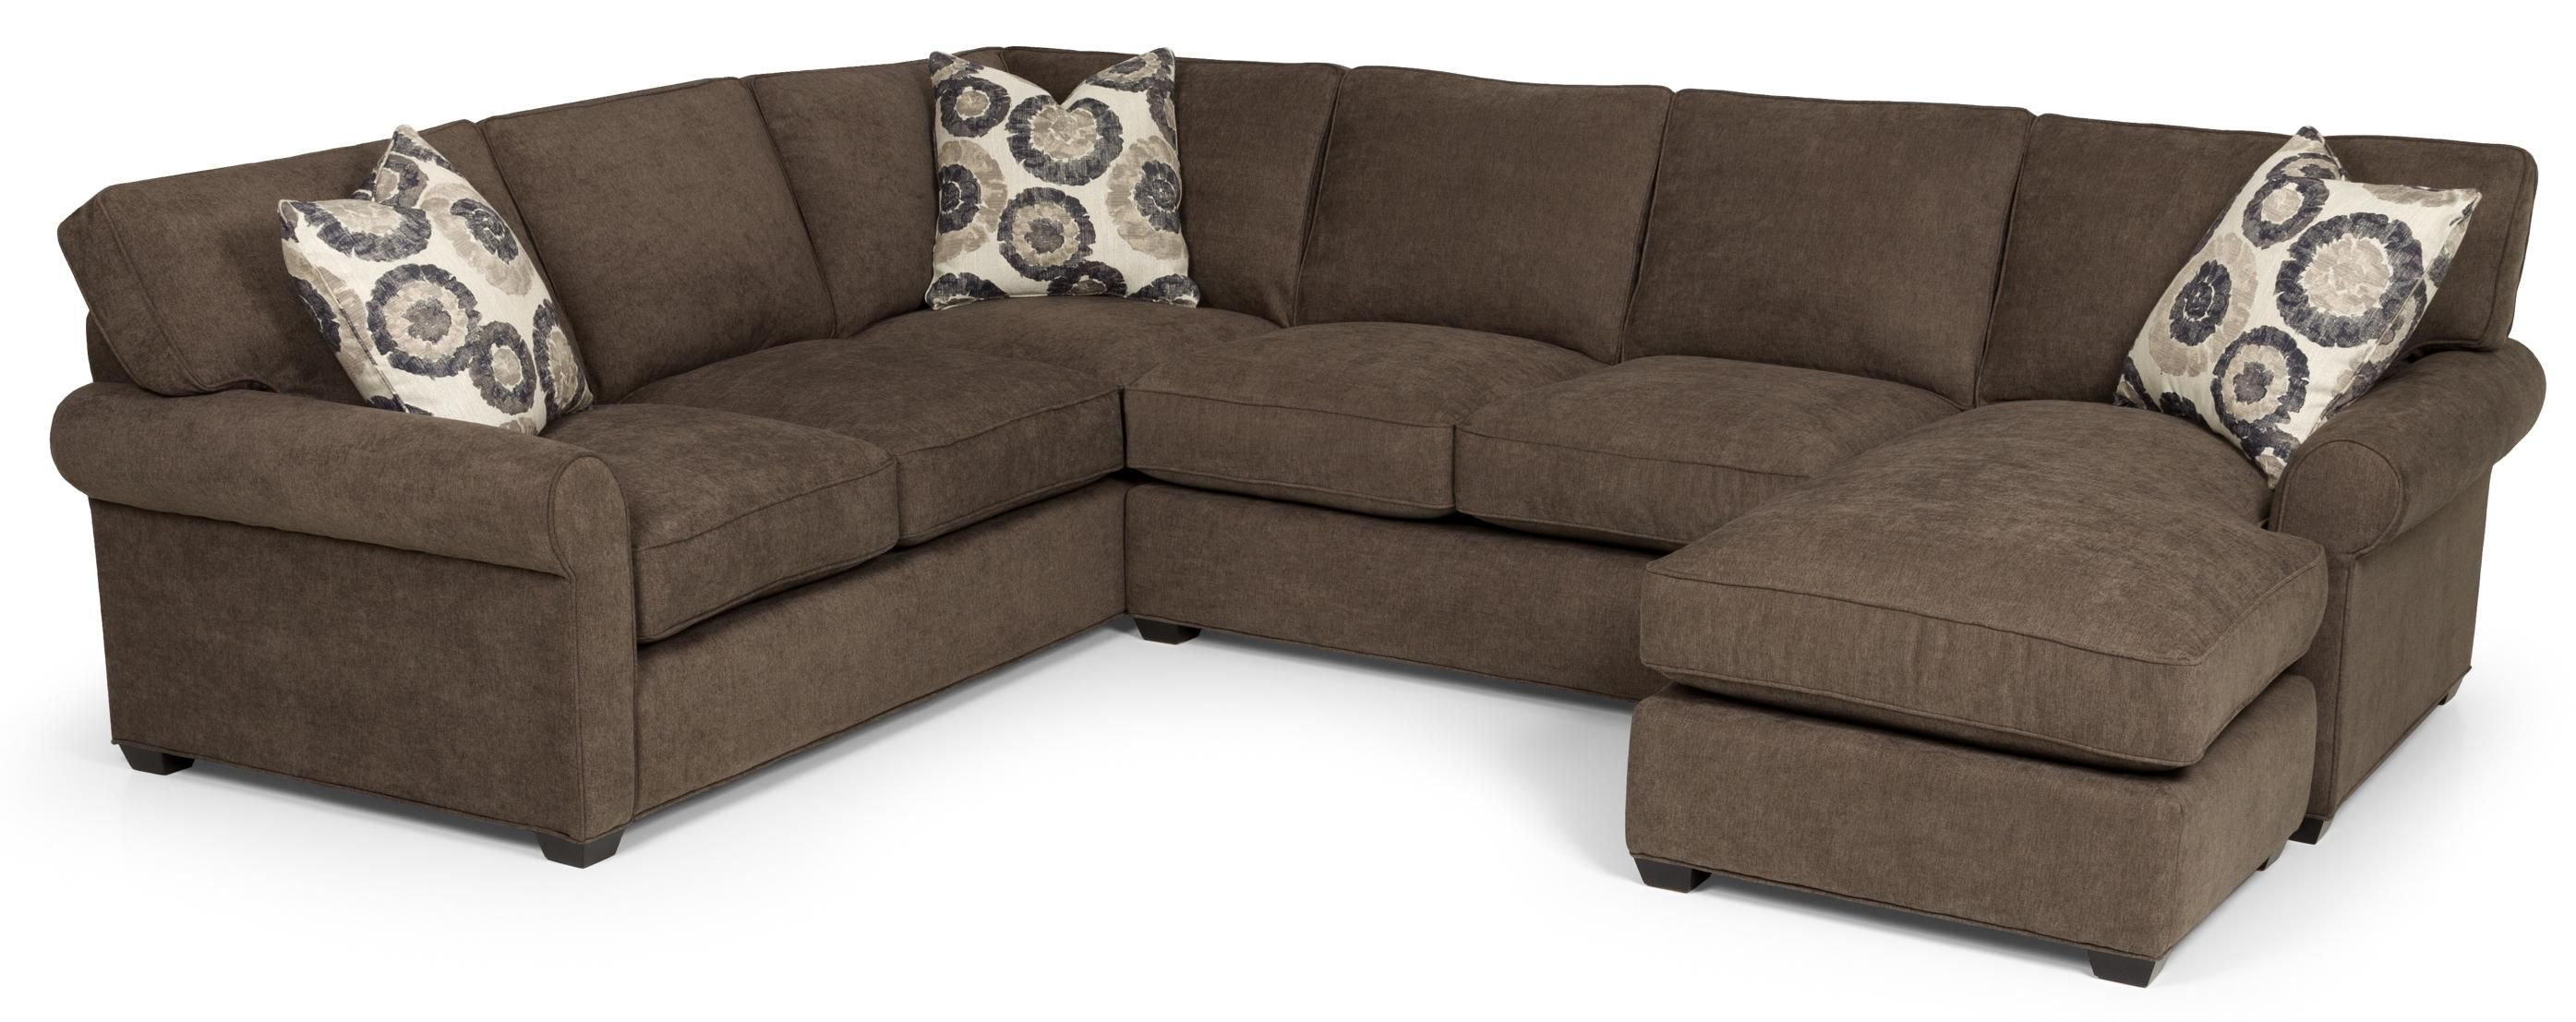 Excellent 225 Transitional 2 Piece Sectional Sofa With Chaise By Creativecarmelina Interior Chair Design Creativecarmelinacom